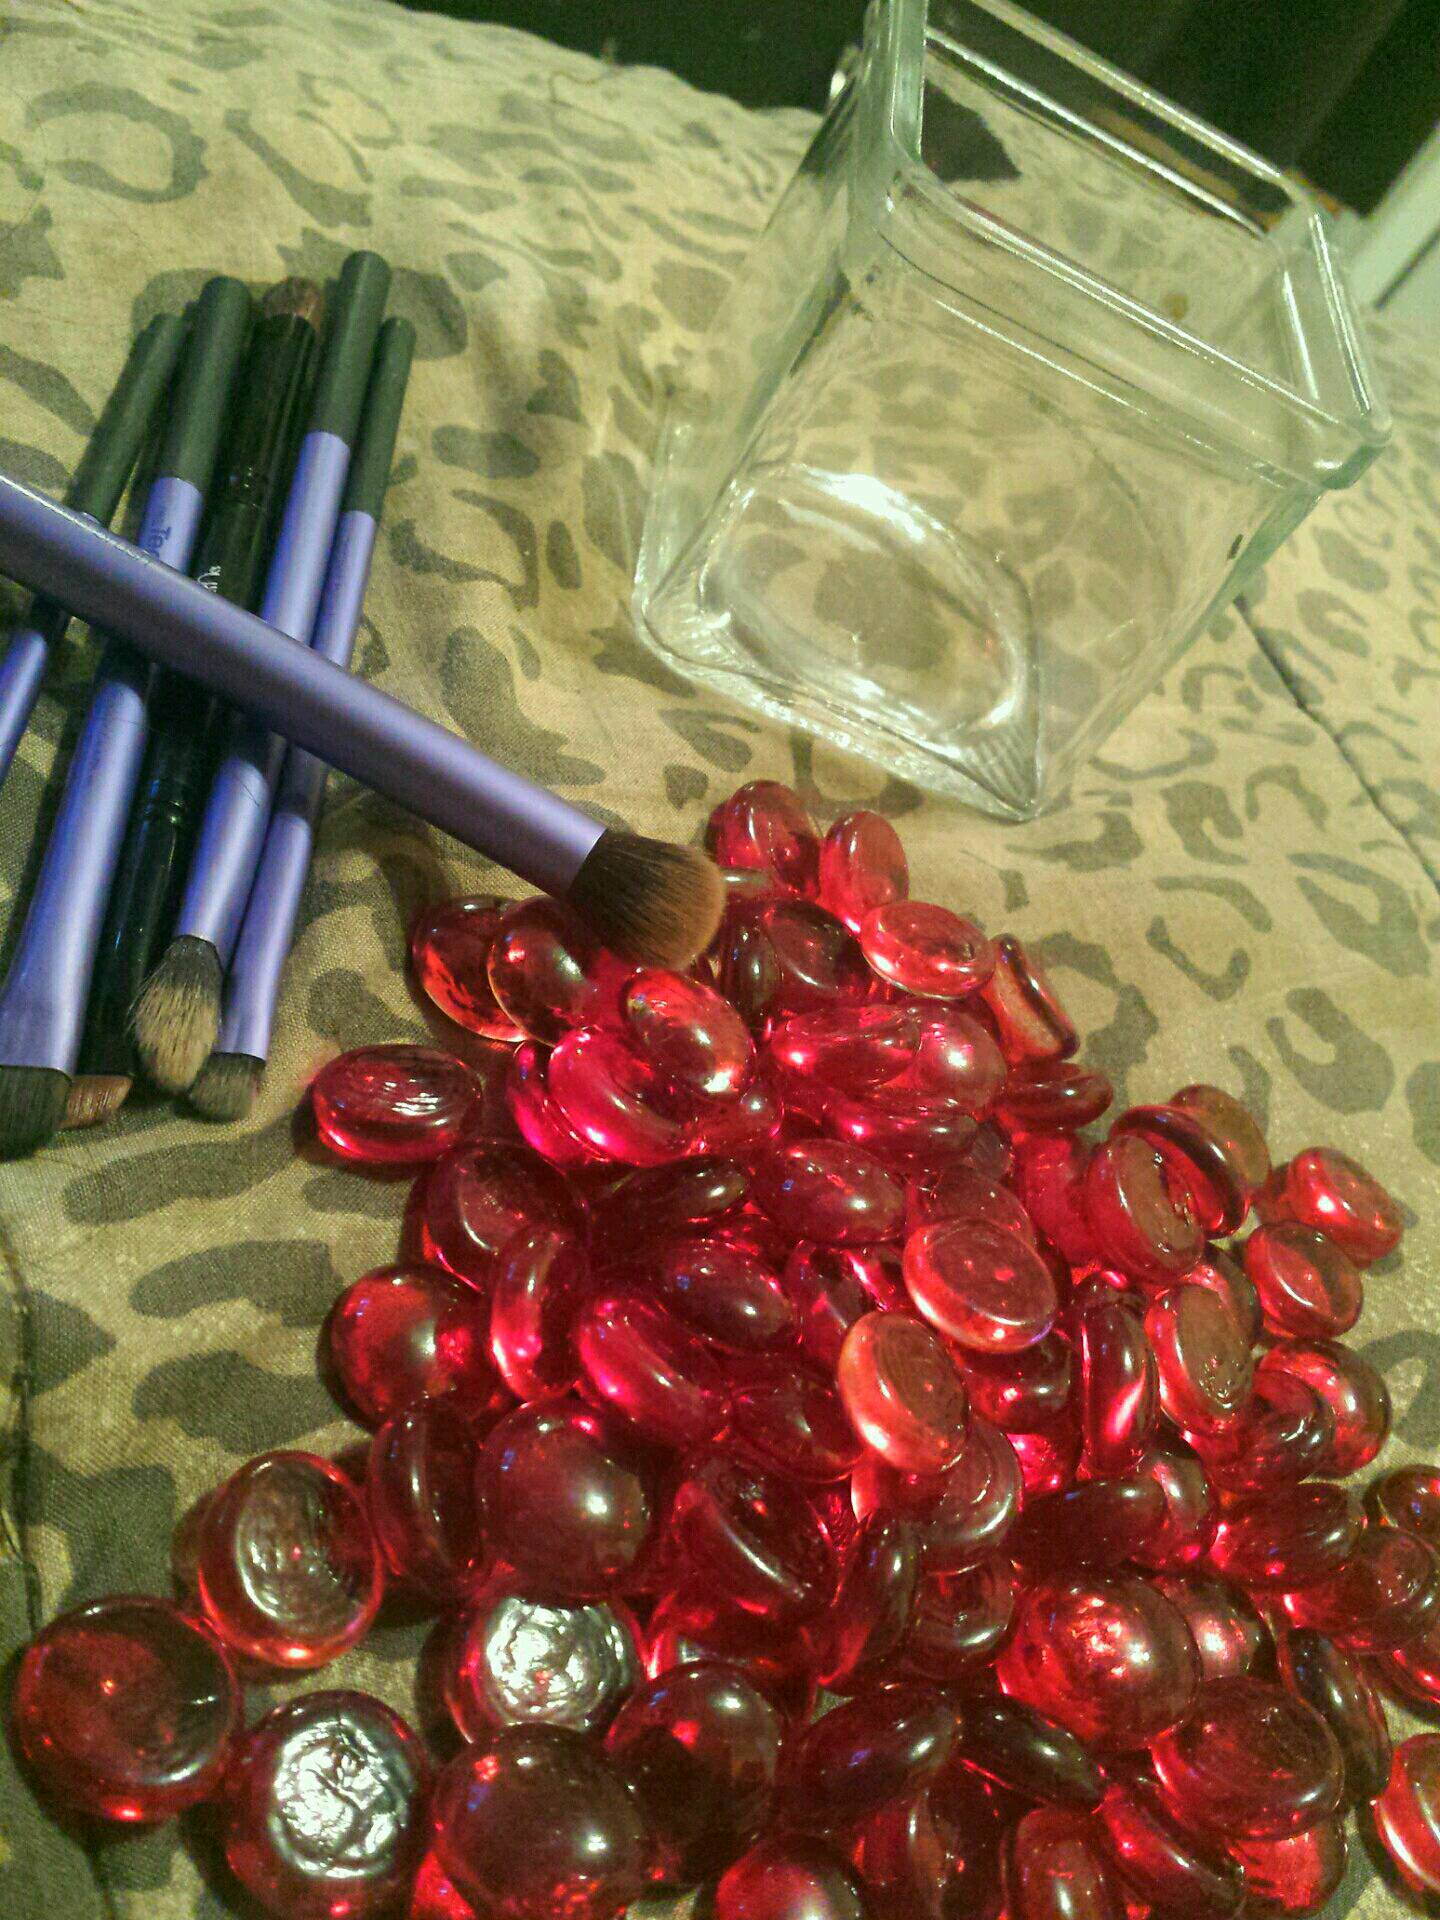 YOU WILL NEED: GLASS CONTAINER, MARBLE PEBBLES, MAKEUP BRUSHES